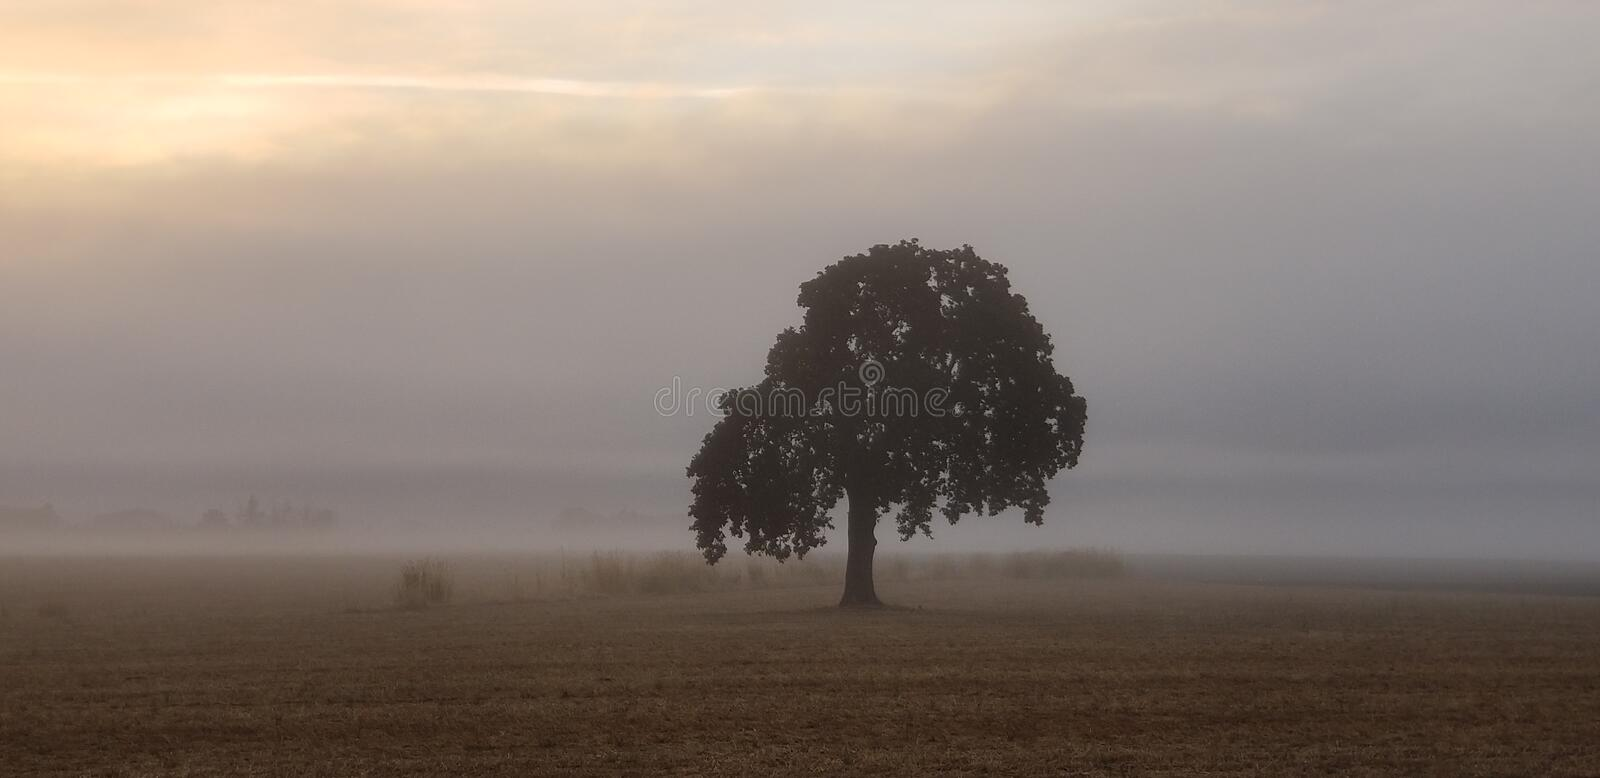 Mist in the Morning royalty free stock images